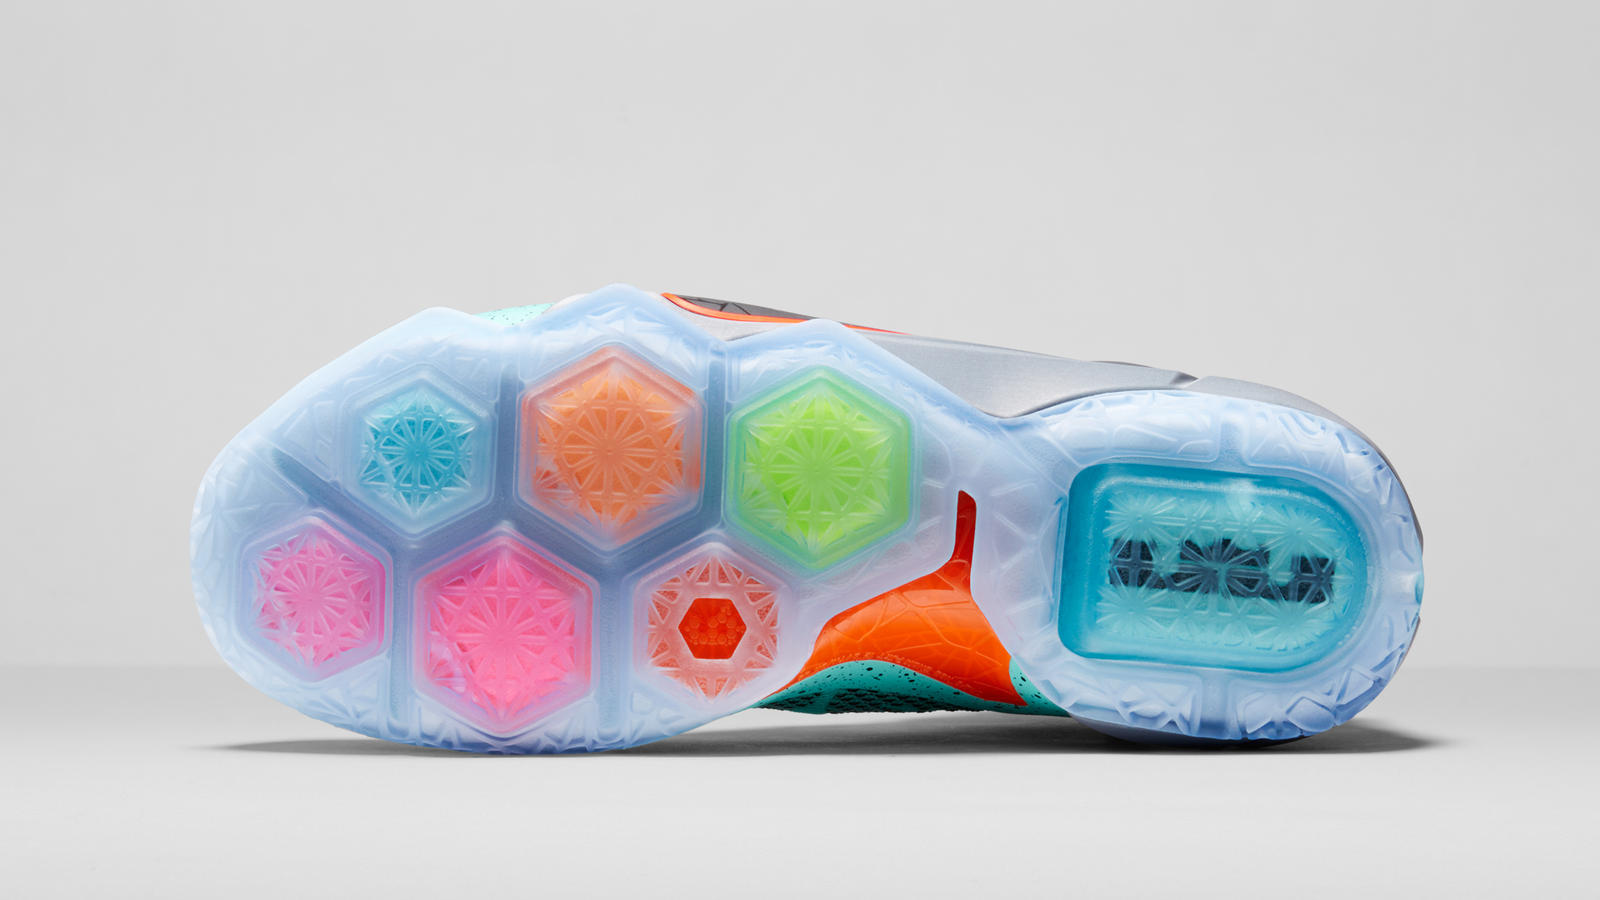 b5f08cbf6225 Nike LEBRON 12  Engineered for Explosiveness - Nike News